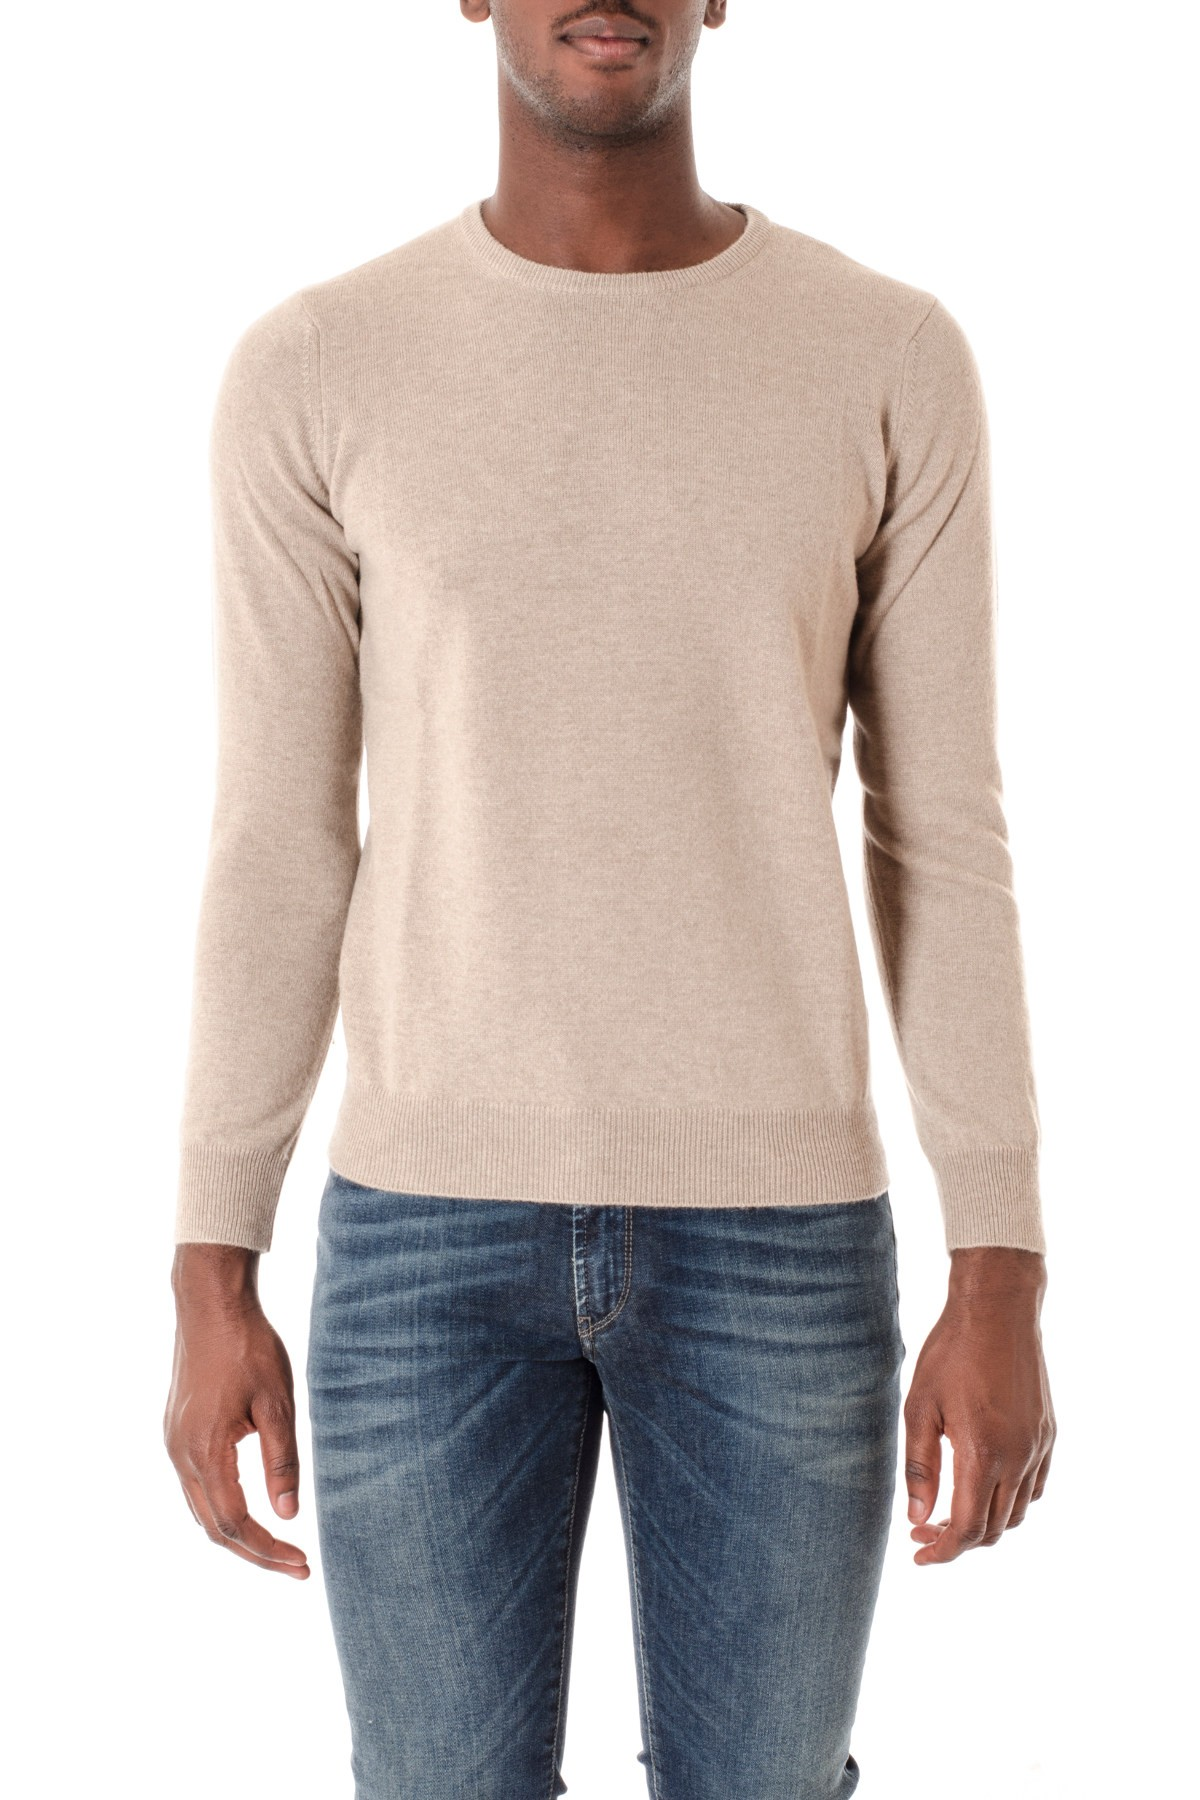 6d105d1f9214 Beige cashmere crew-neck sweater for men RIONE FONTANA F W 16-17. Tap to  expand